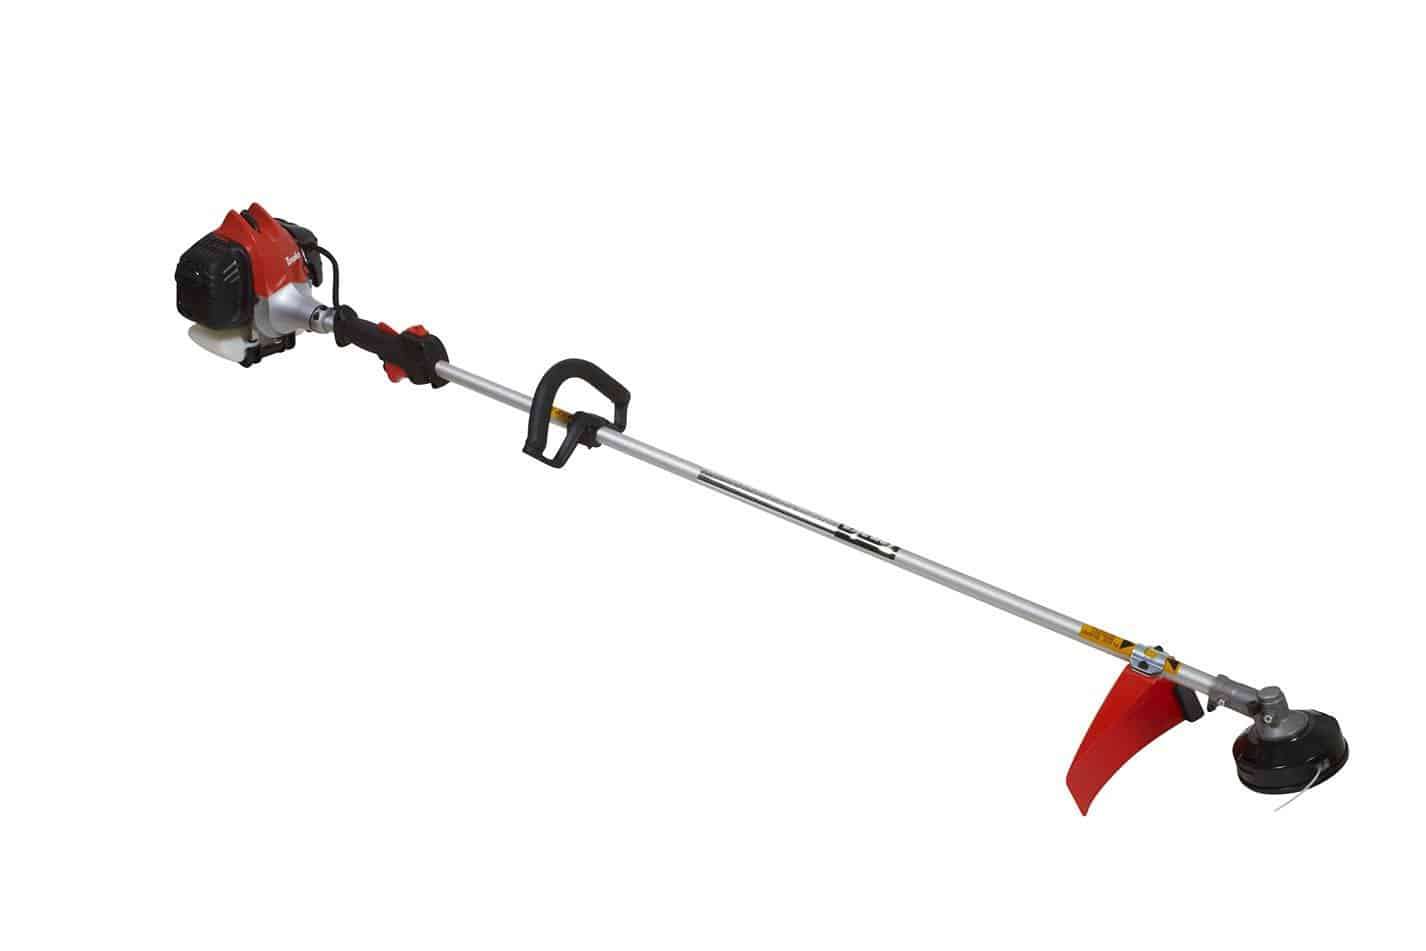 Tanaka TCG24EBSP 2 Cycle Commercial Trimmer 1